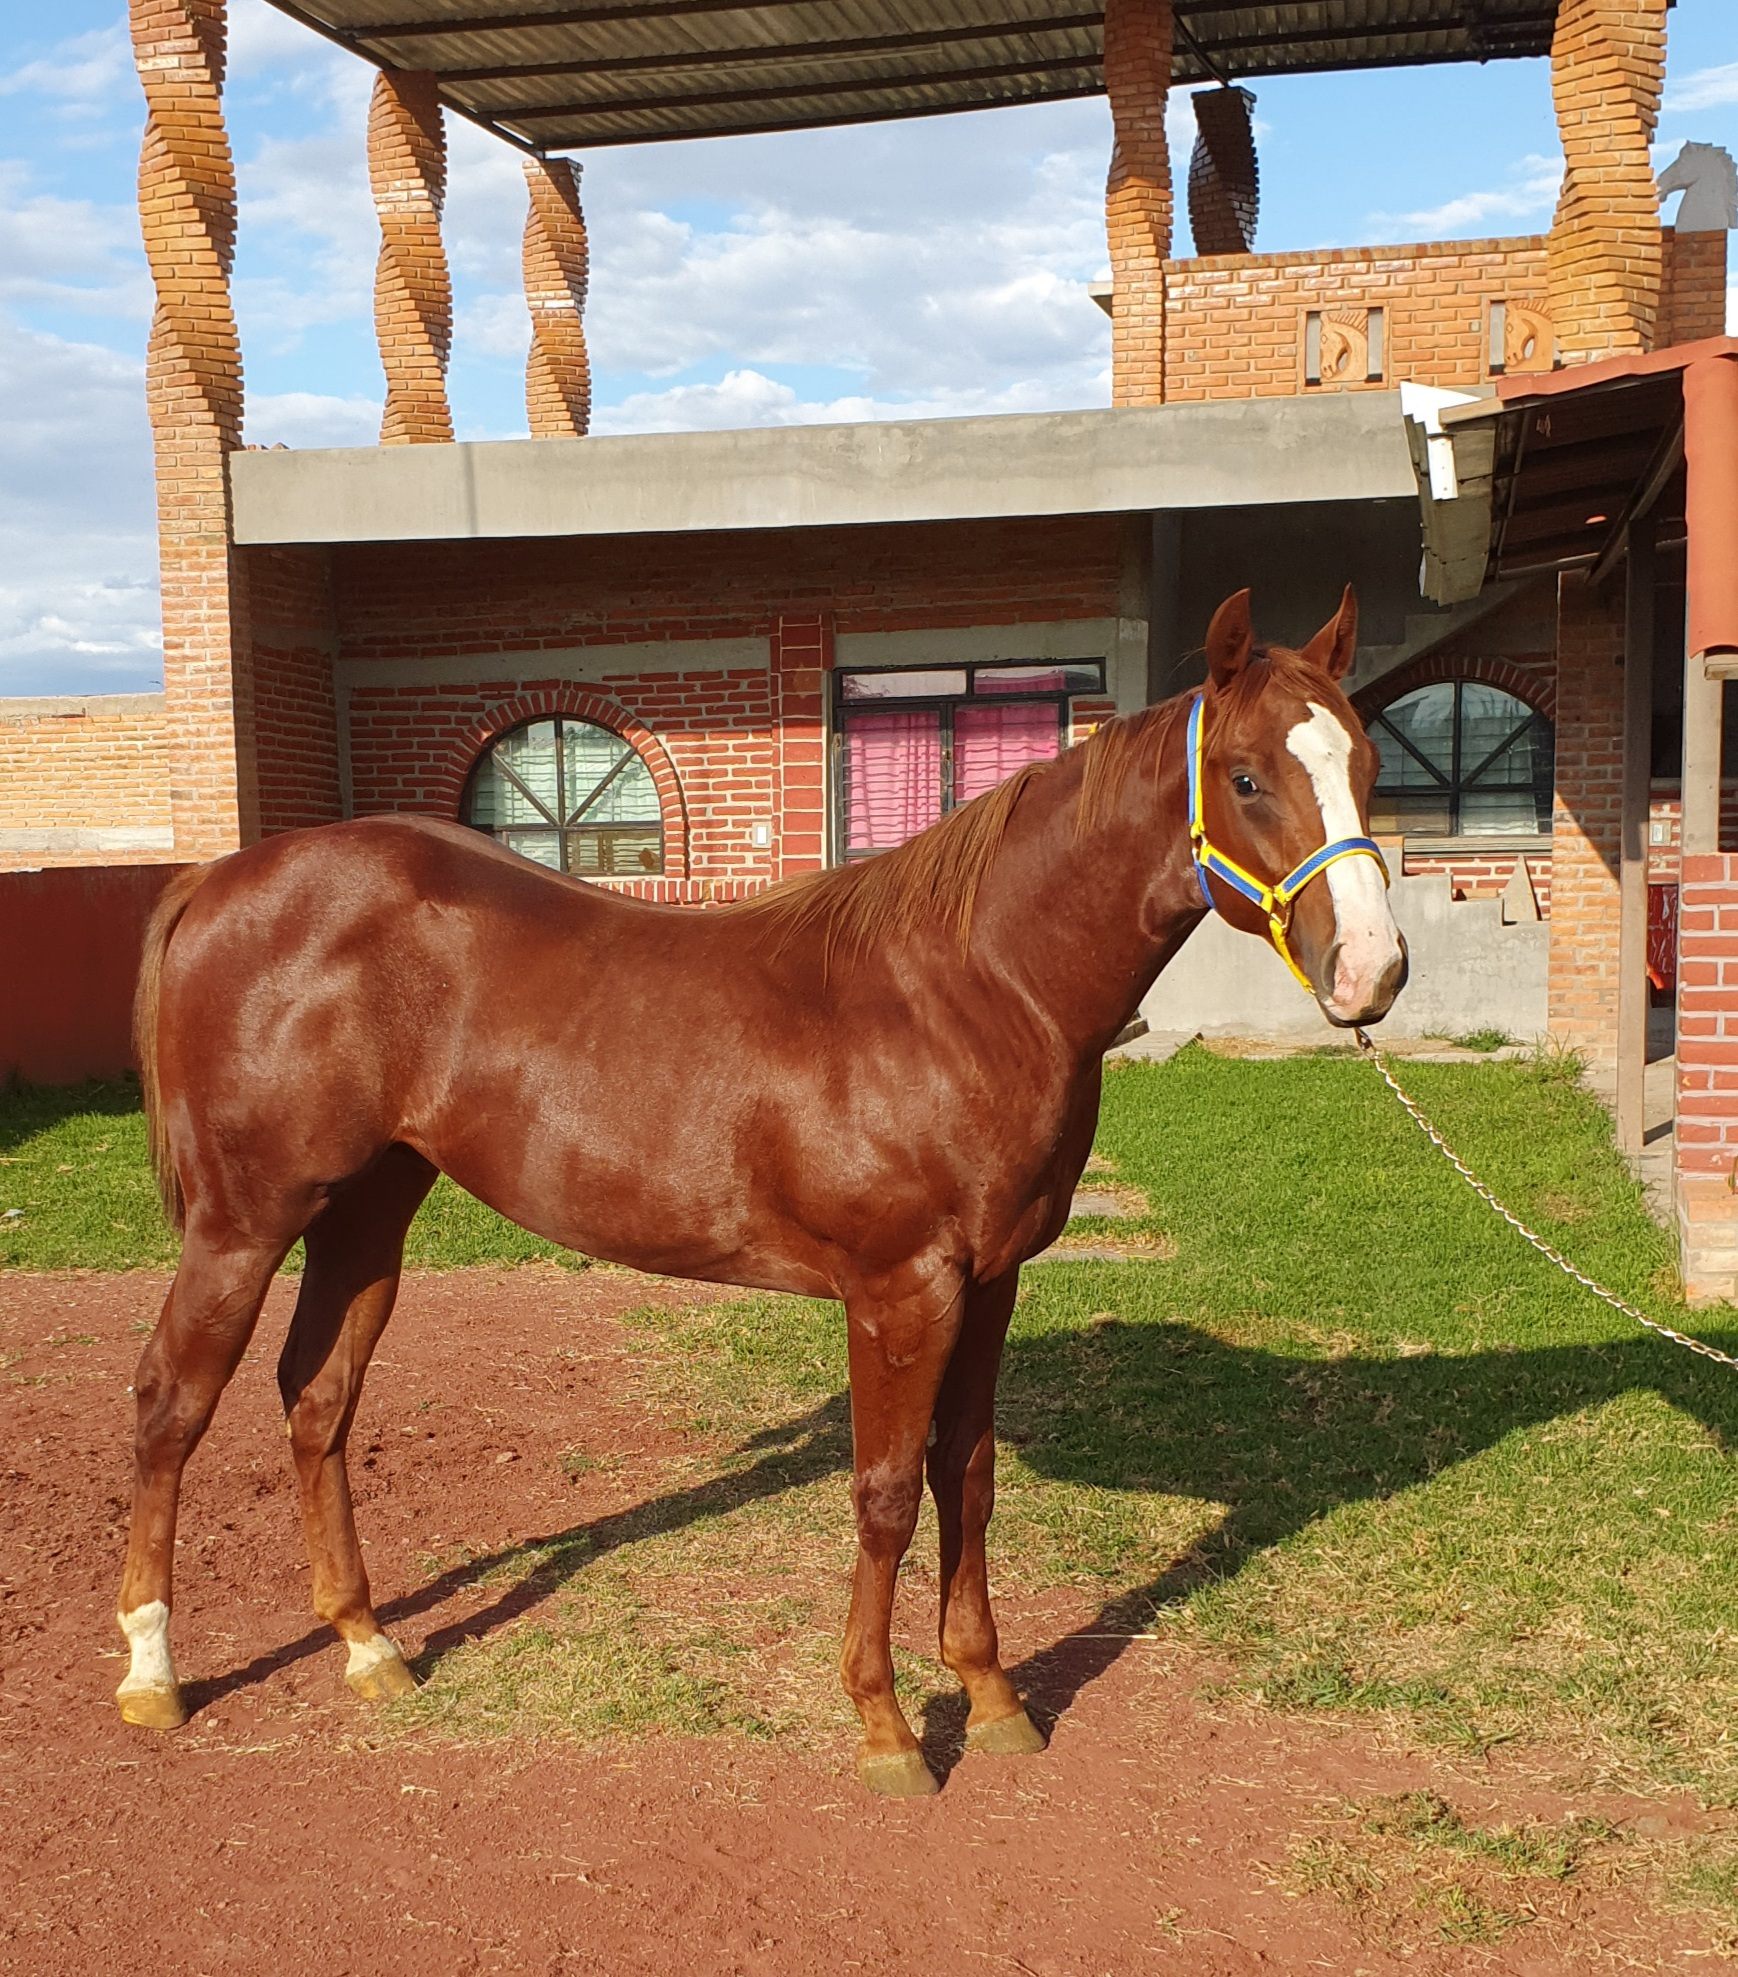 Lote 320 20200919_225255